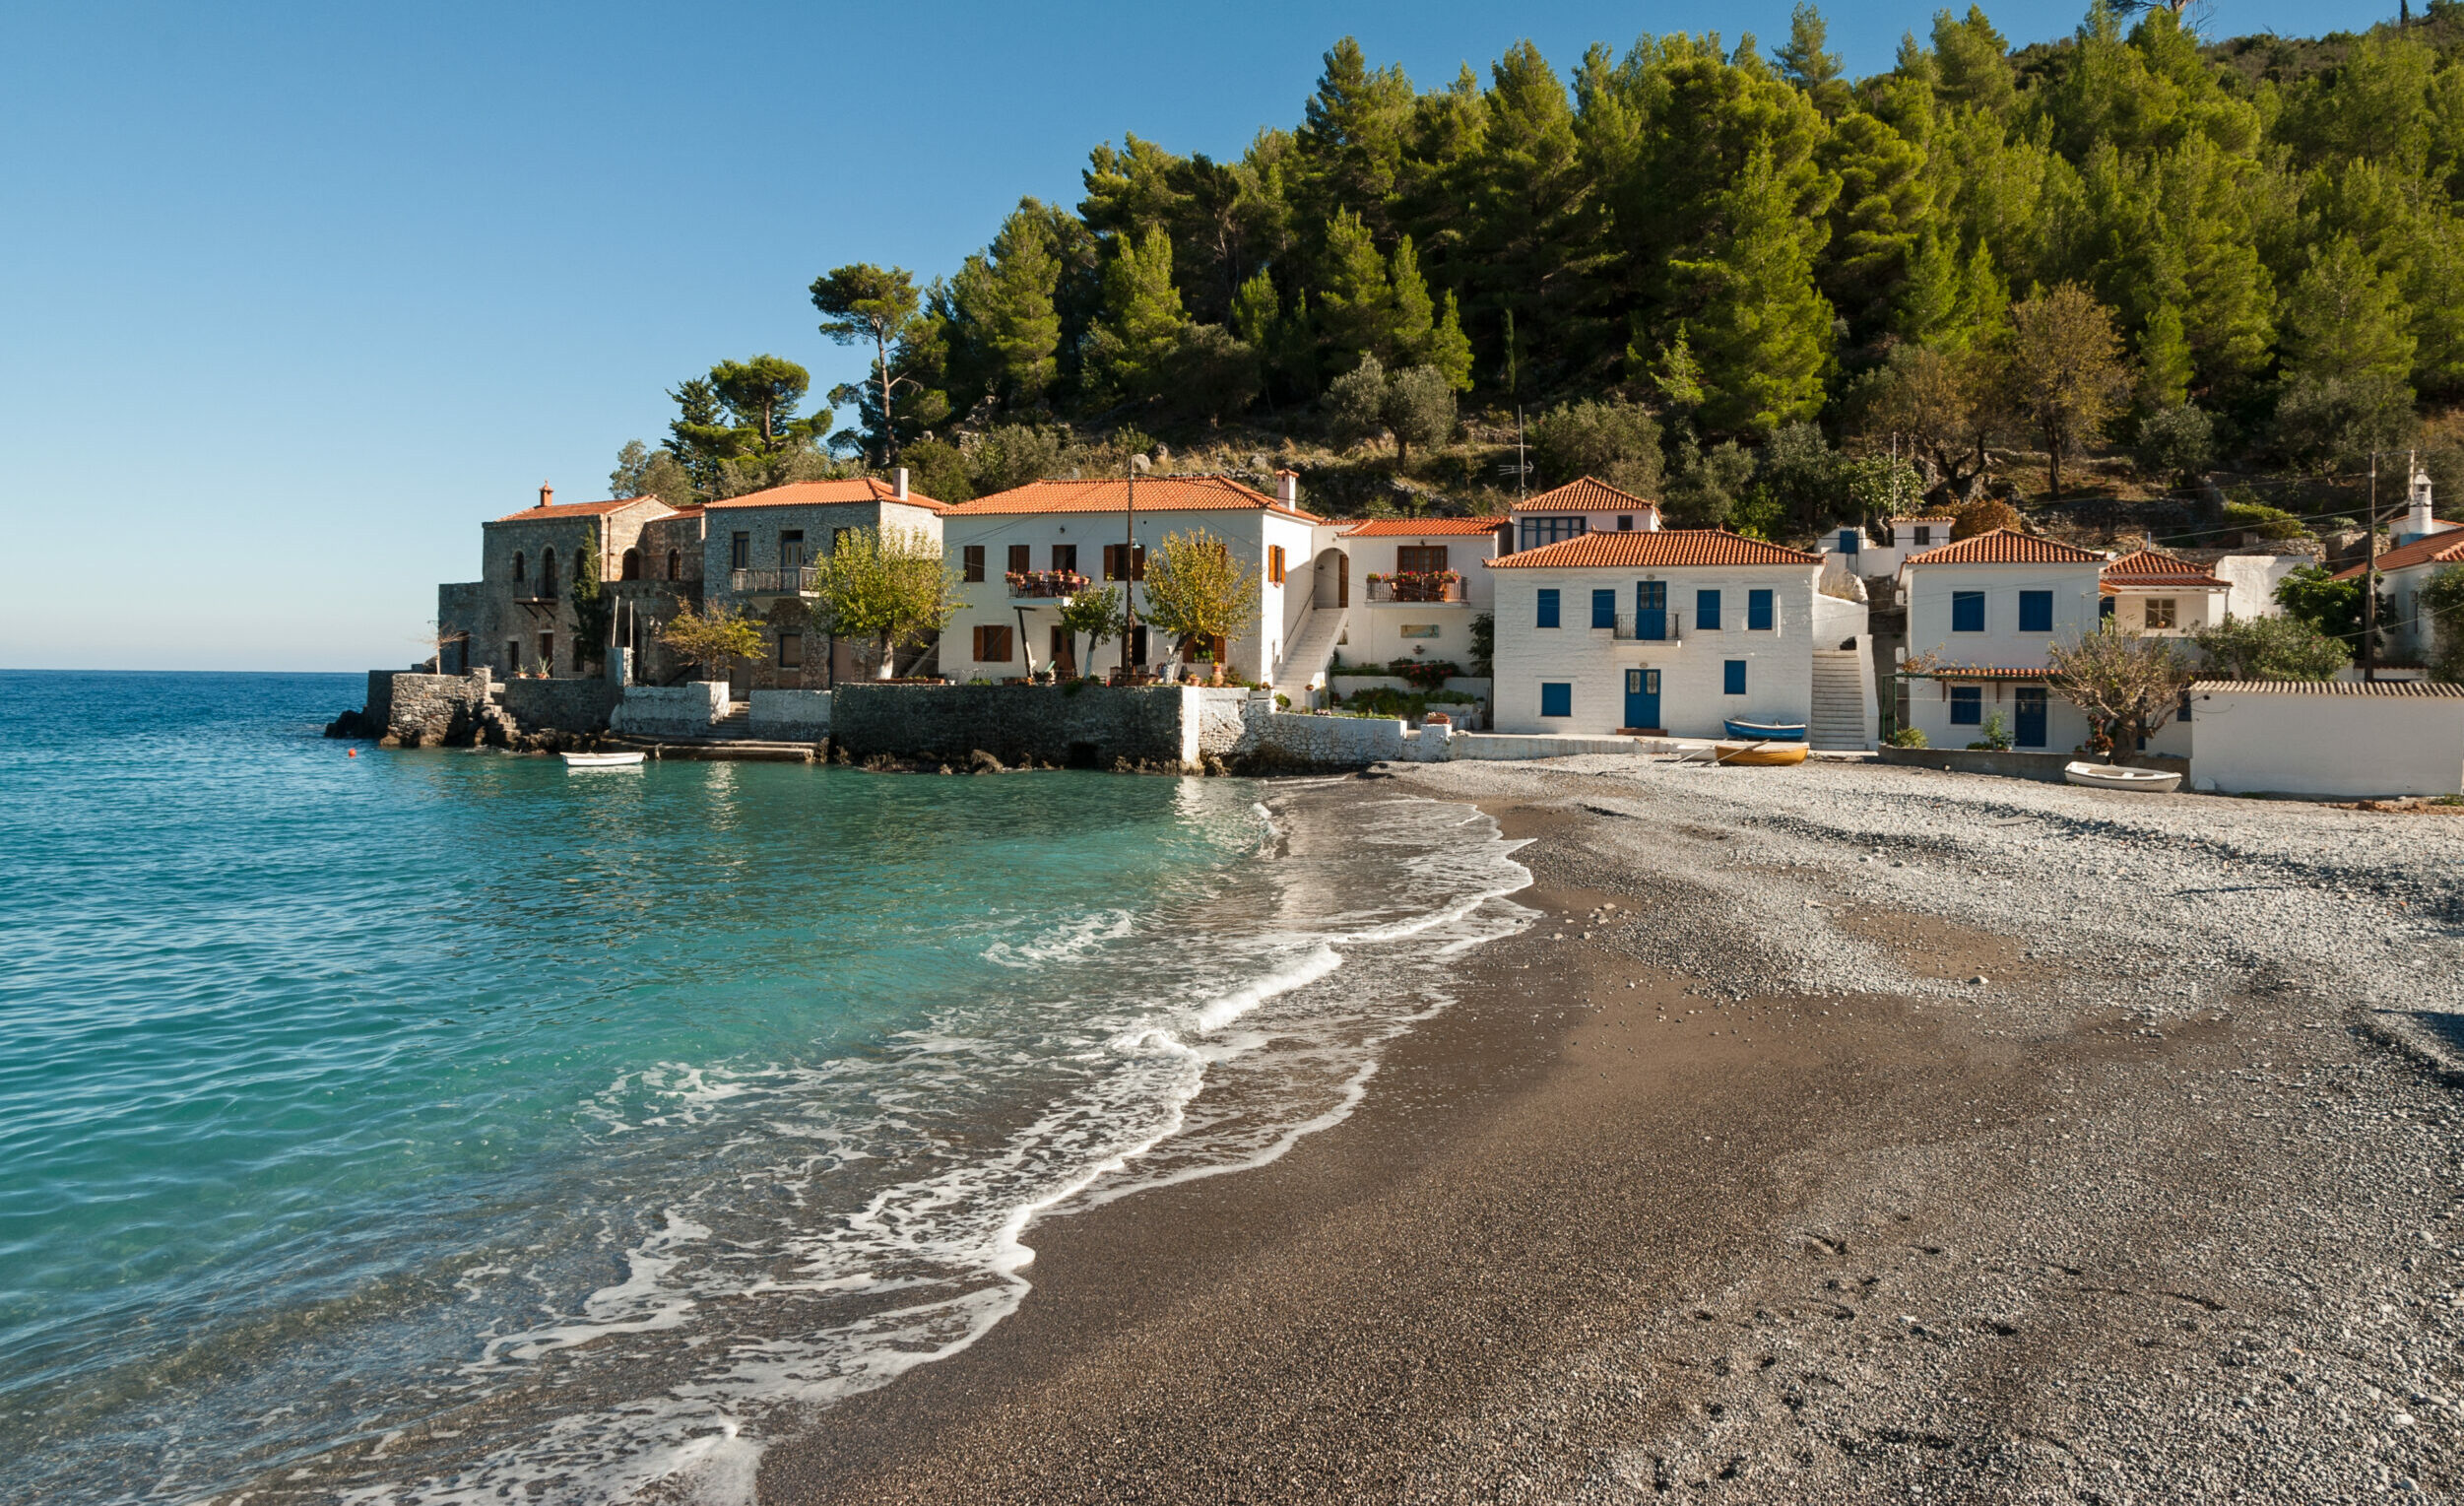 The hidden village of Greece between a mountain and the sea